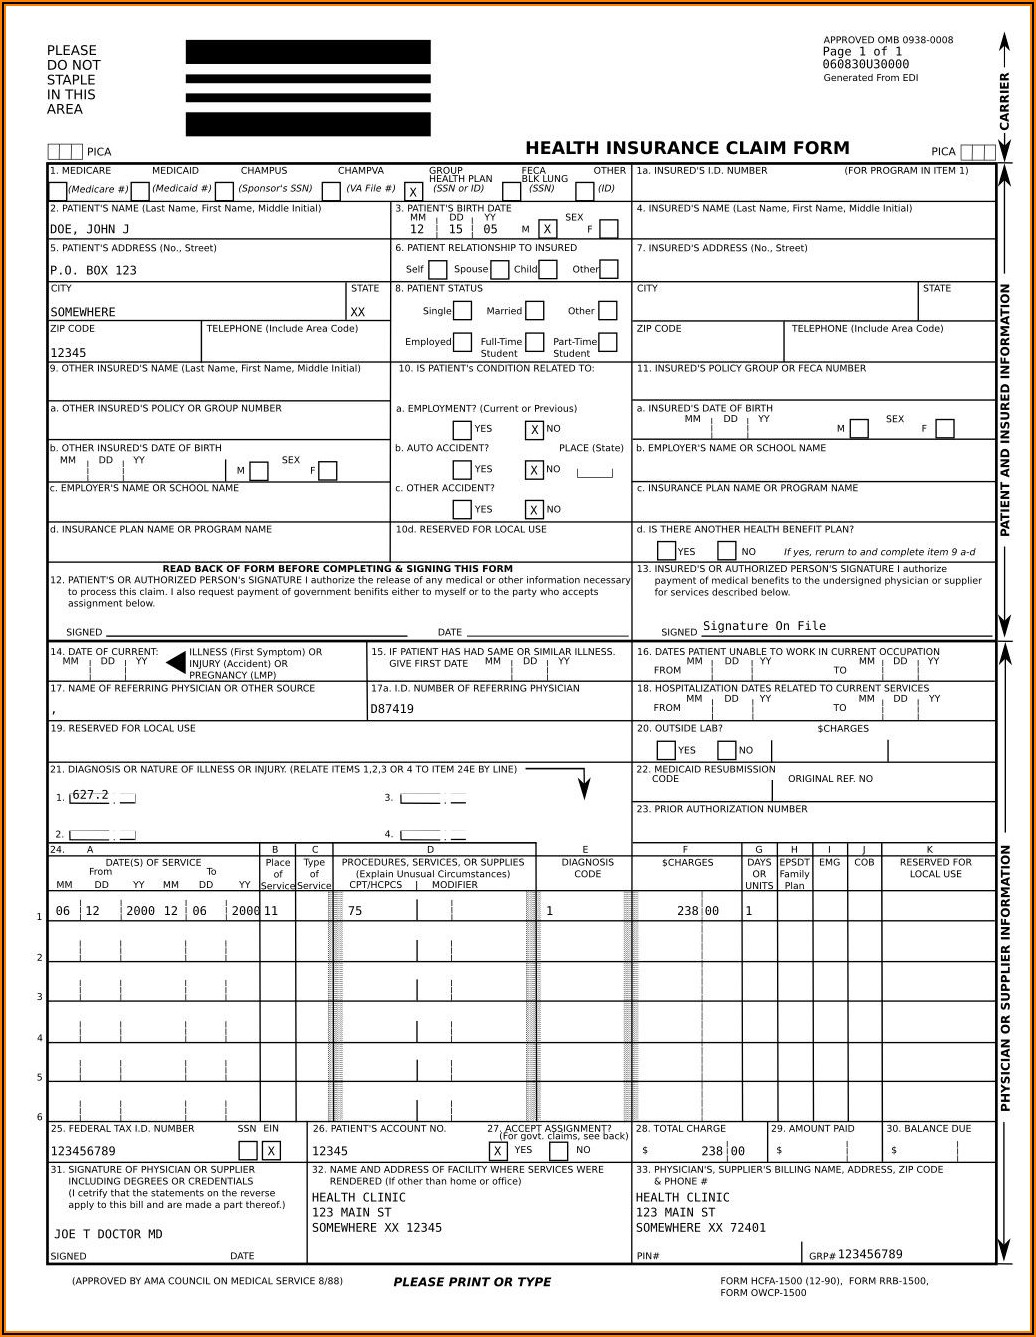 Cms 1500 Fillable Form